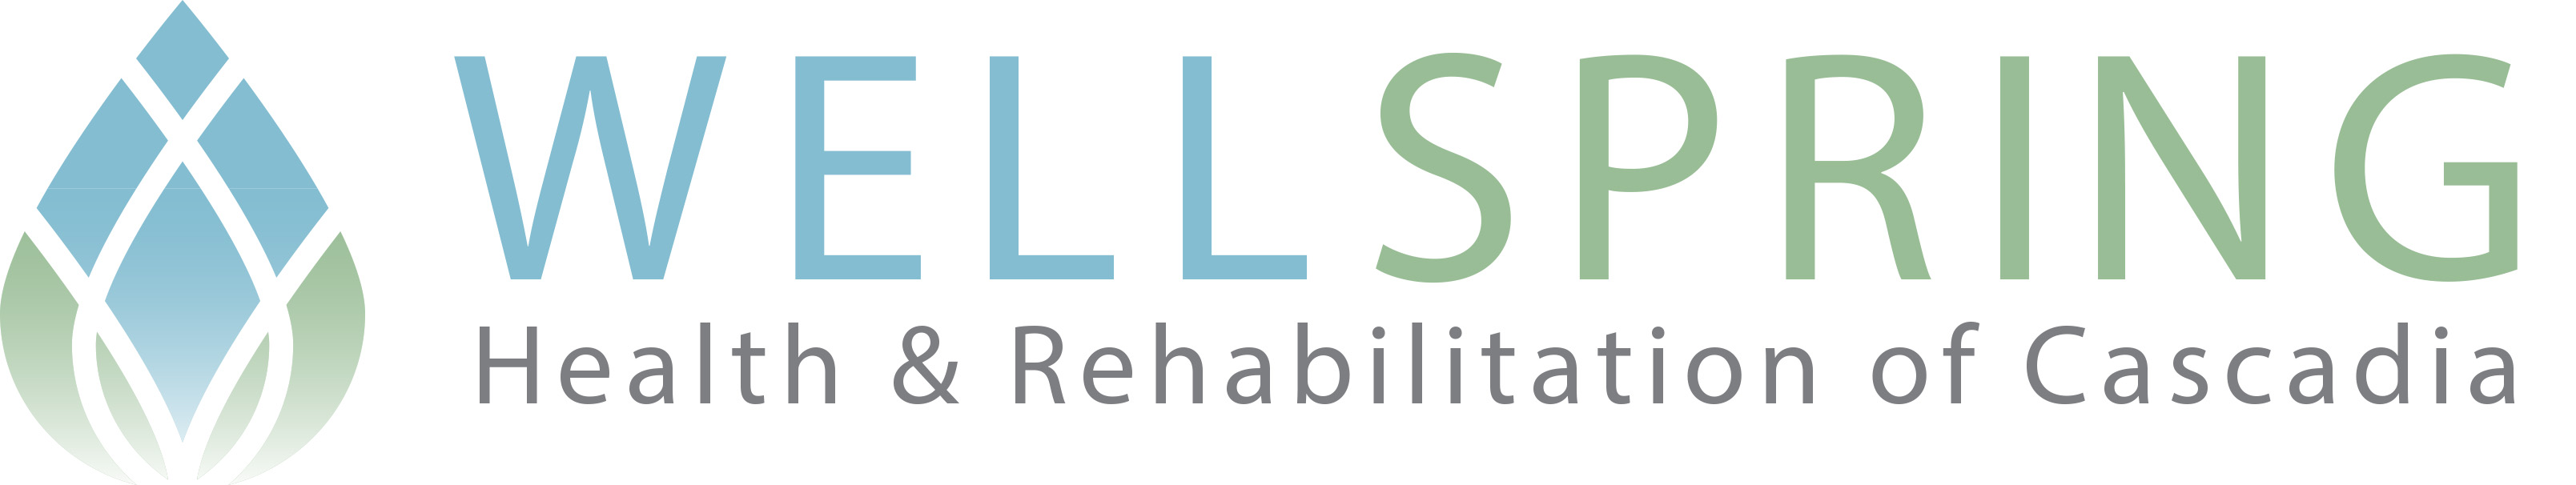 Wellspring Health & Rehabilitation